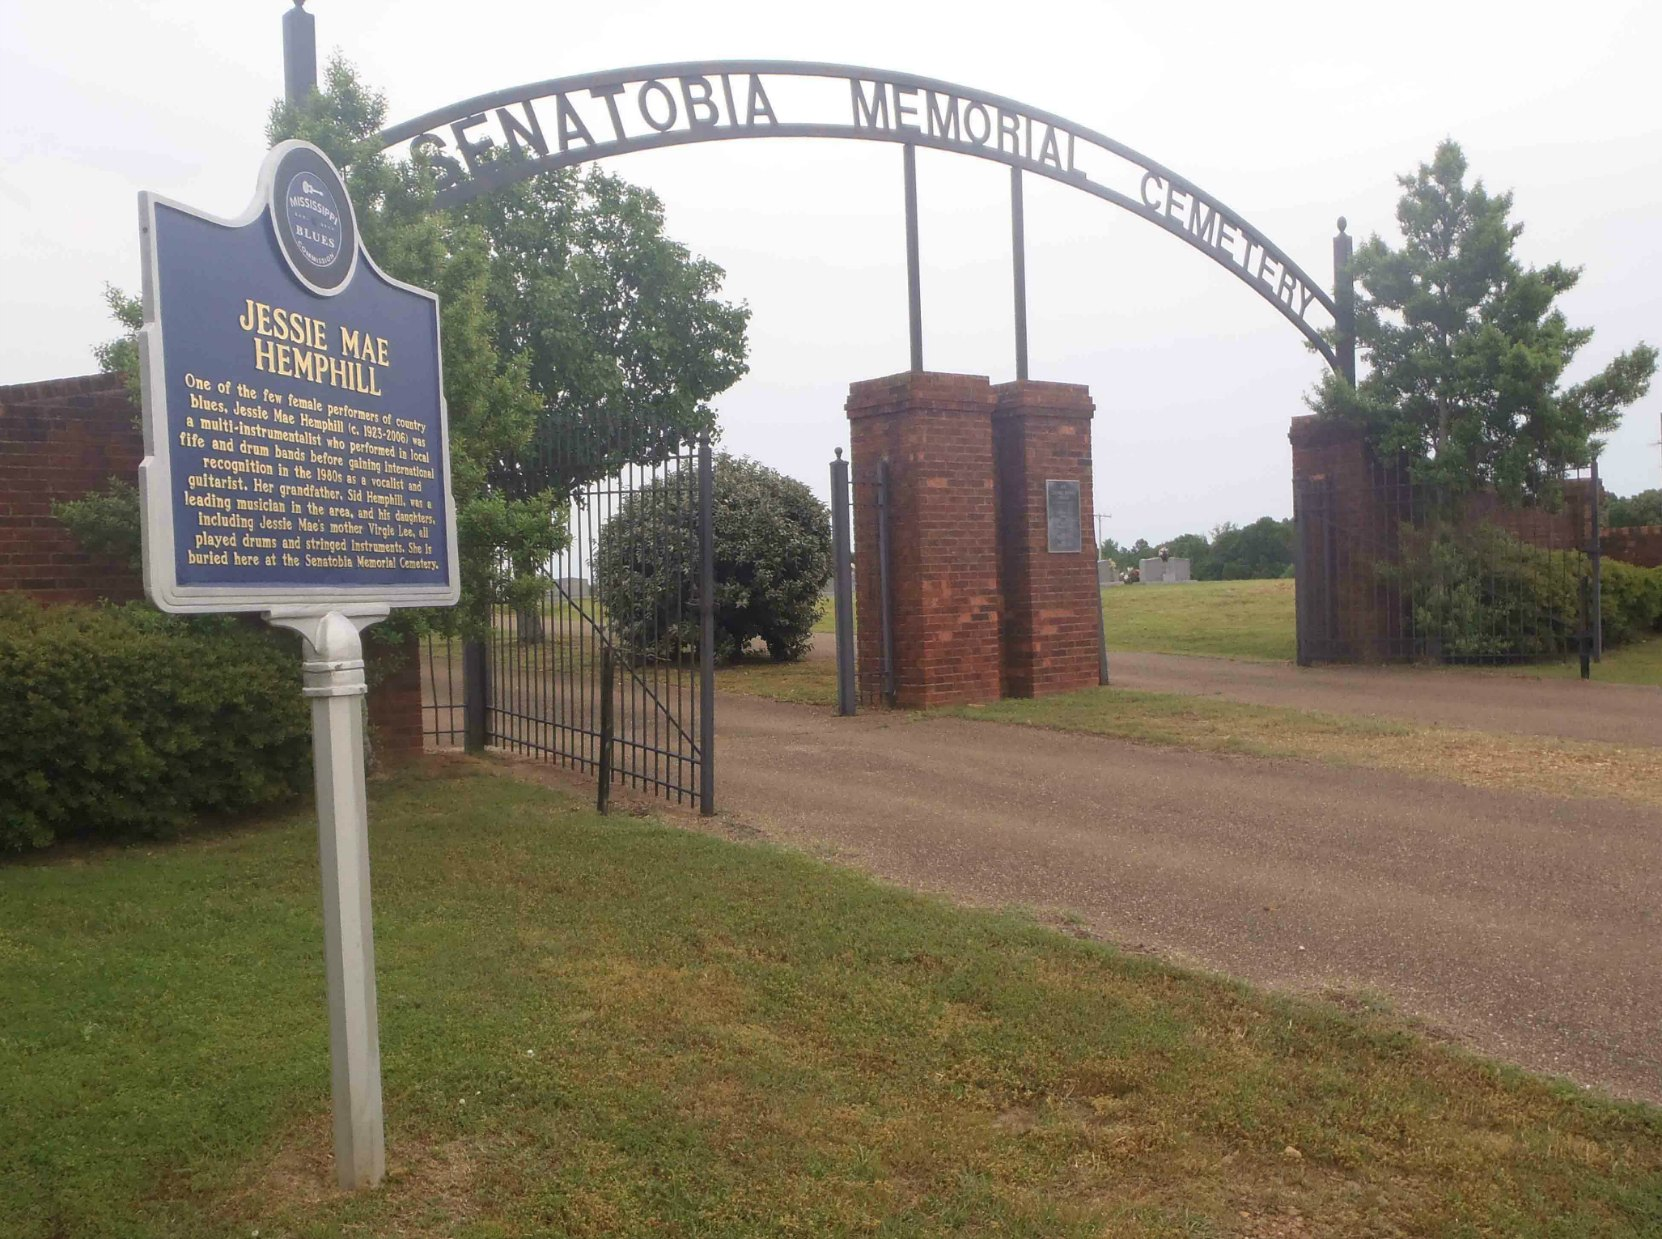 Mississippi Blues Trail marker for Jessie Mae Hemphill at the entrance to Senatobia Memorial Cemetery, Senatobia, Mississippi.